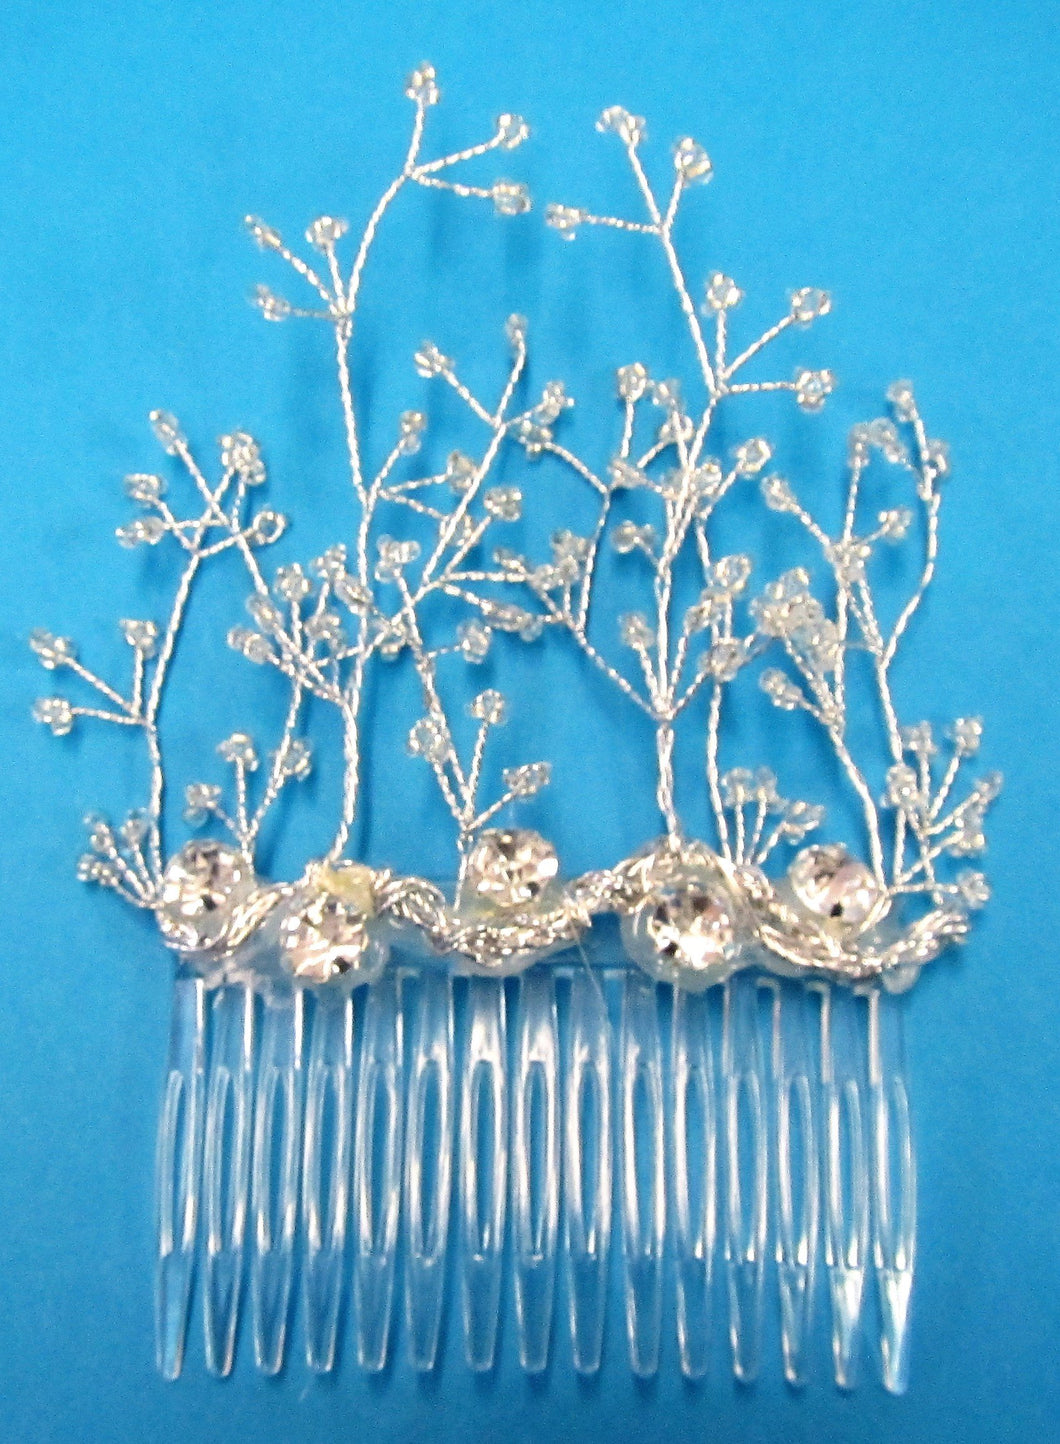 Handcrafted bridal hair slide with diamante crystals and seed bead stems